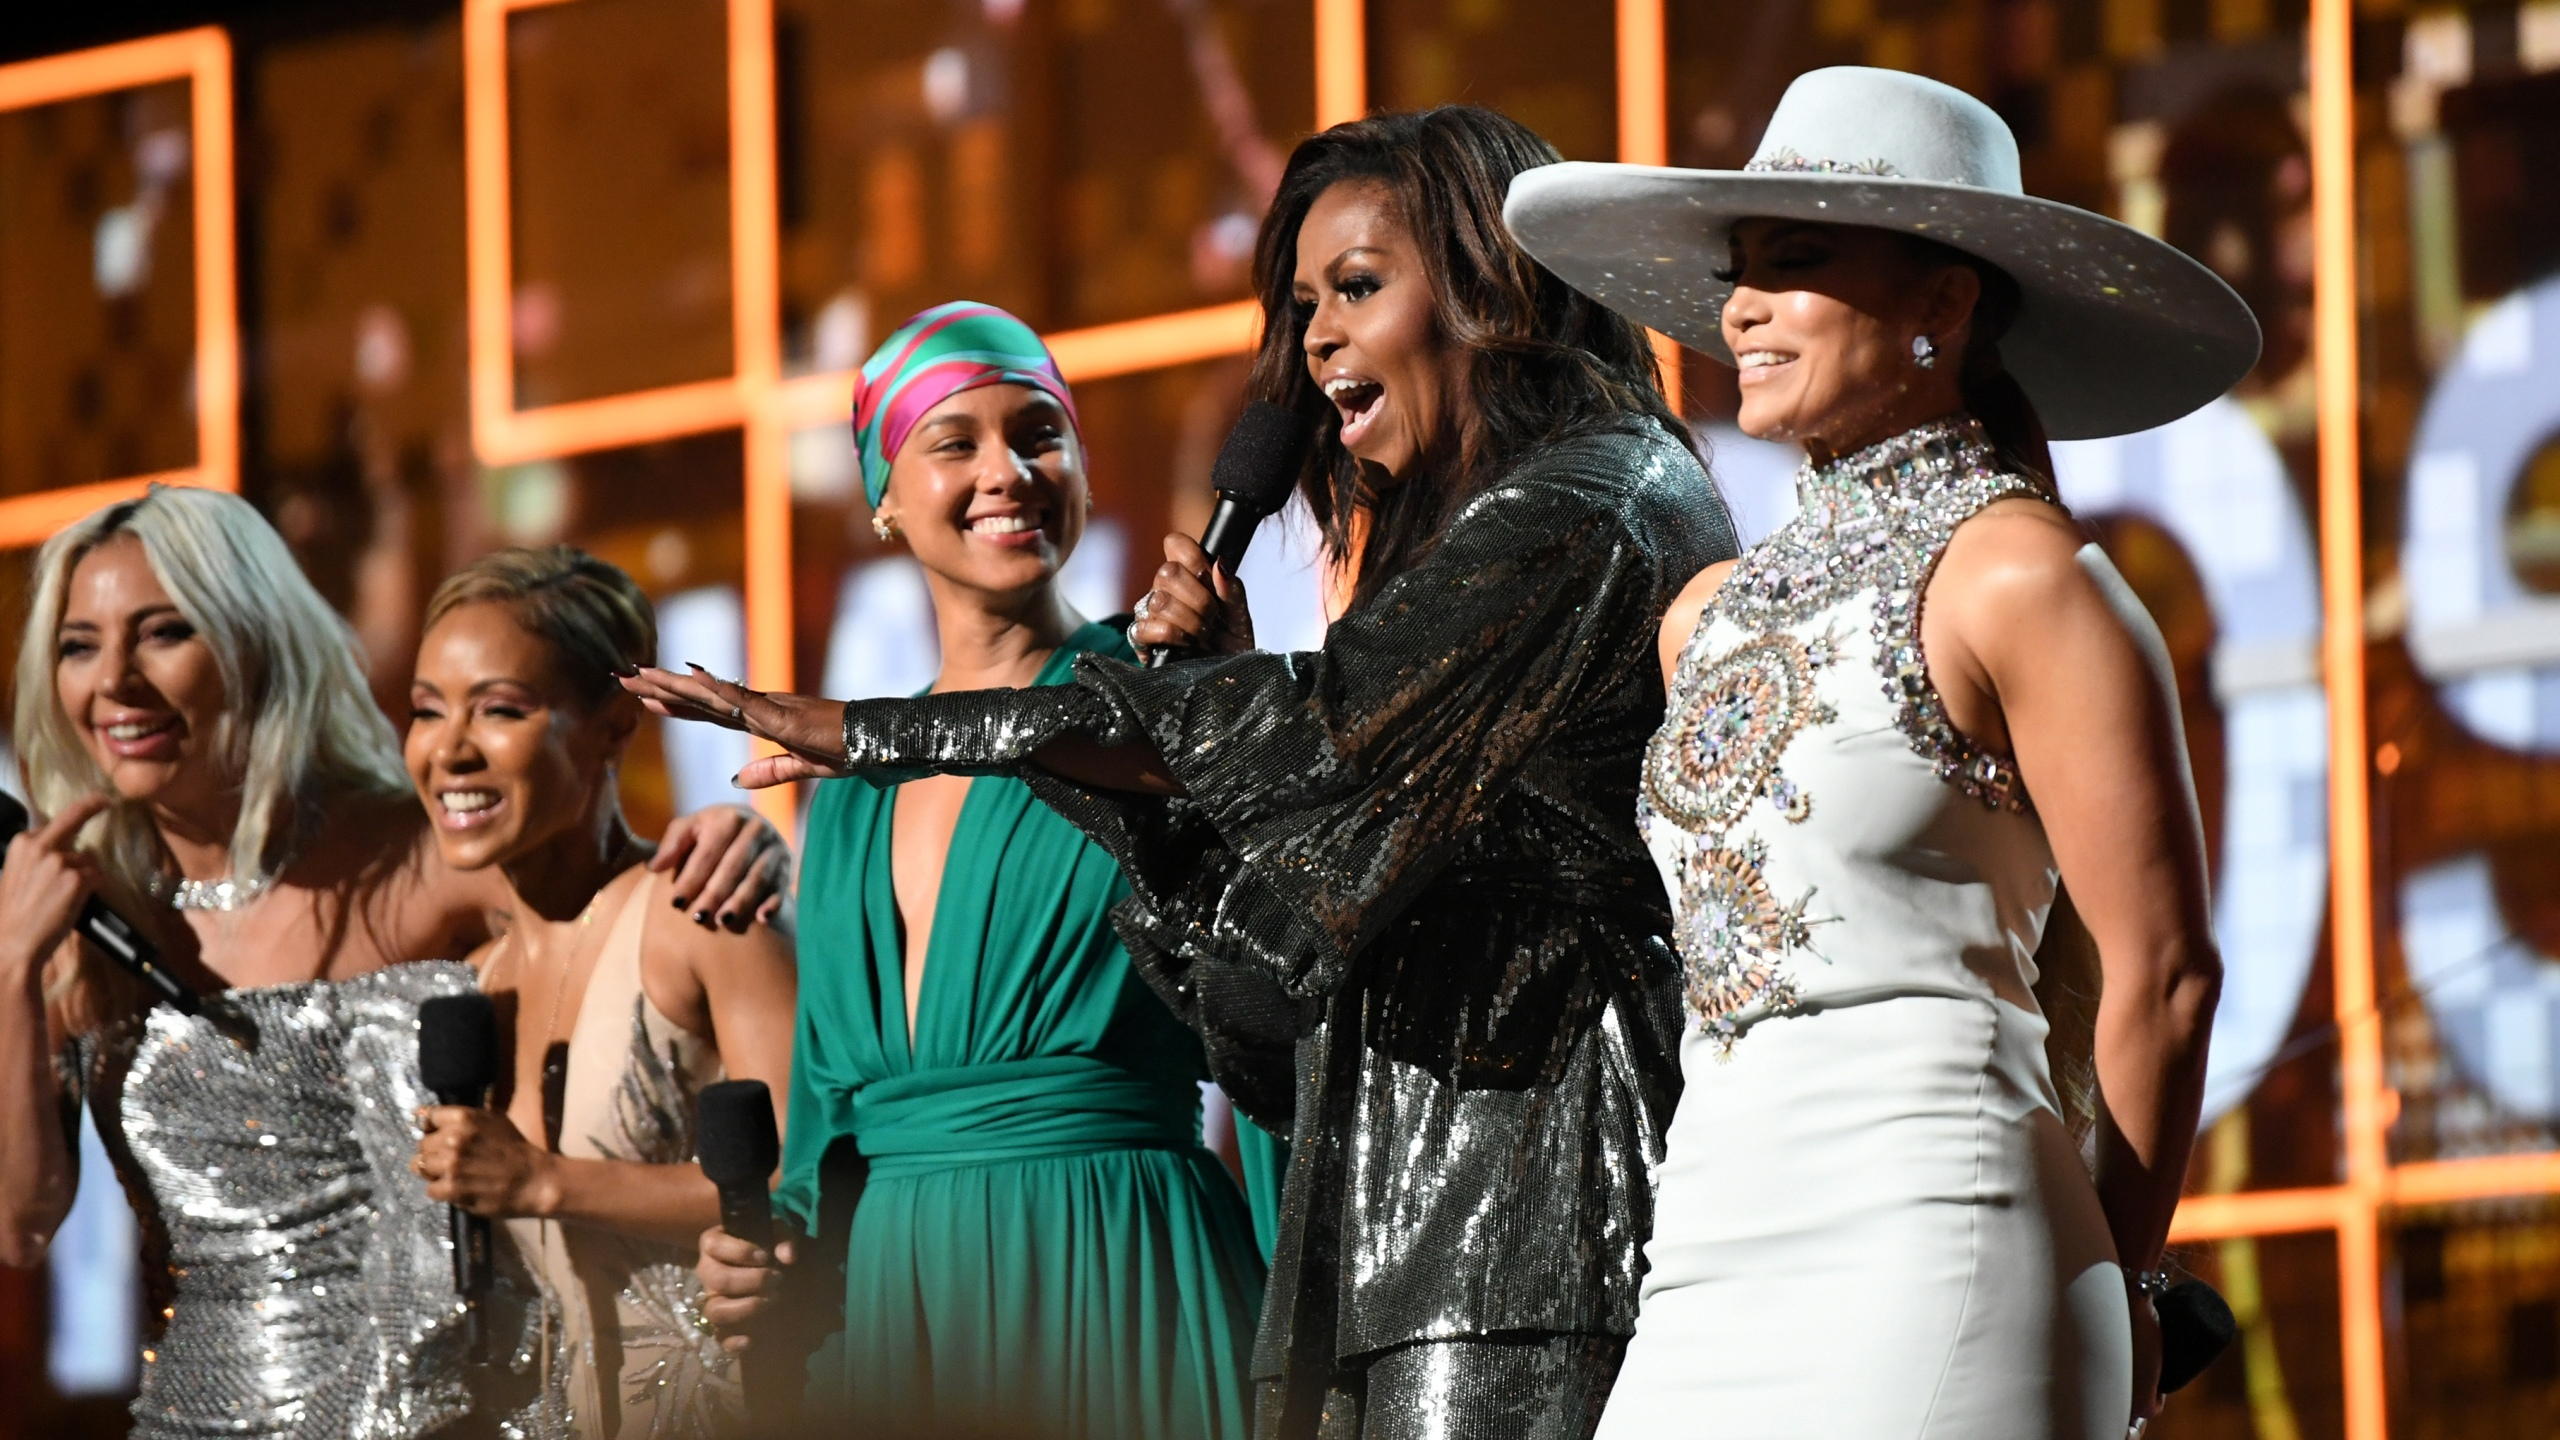 (L-R) Lady Gaga, Jada Pinkett Smith, Alicia Keys, Michelle Obama, and Jennifer Lopez speak onstage during the 61st Annual GRAMMY Awards at Staples Center on February 10, 2019 in Los Angeles, California. (Credit: Emma McIntyre/Getty Images for The Recording Academy)